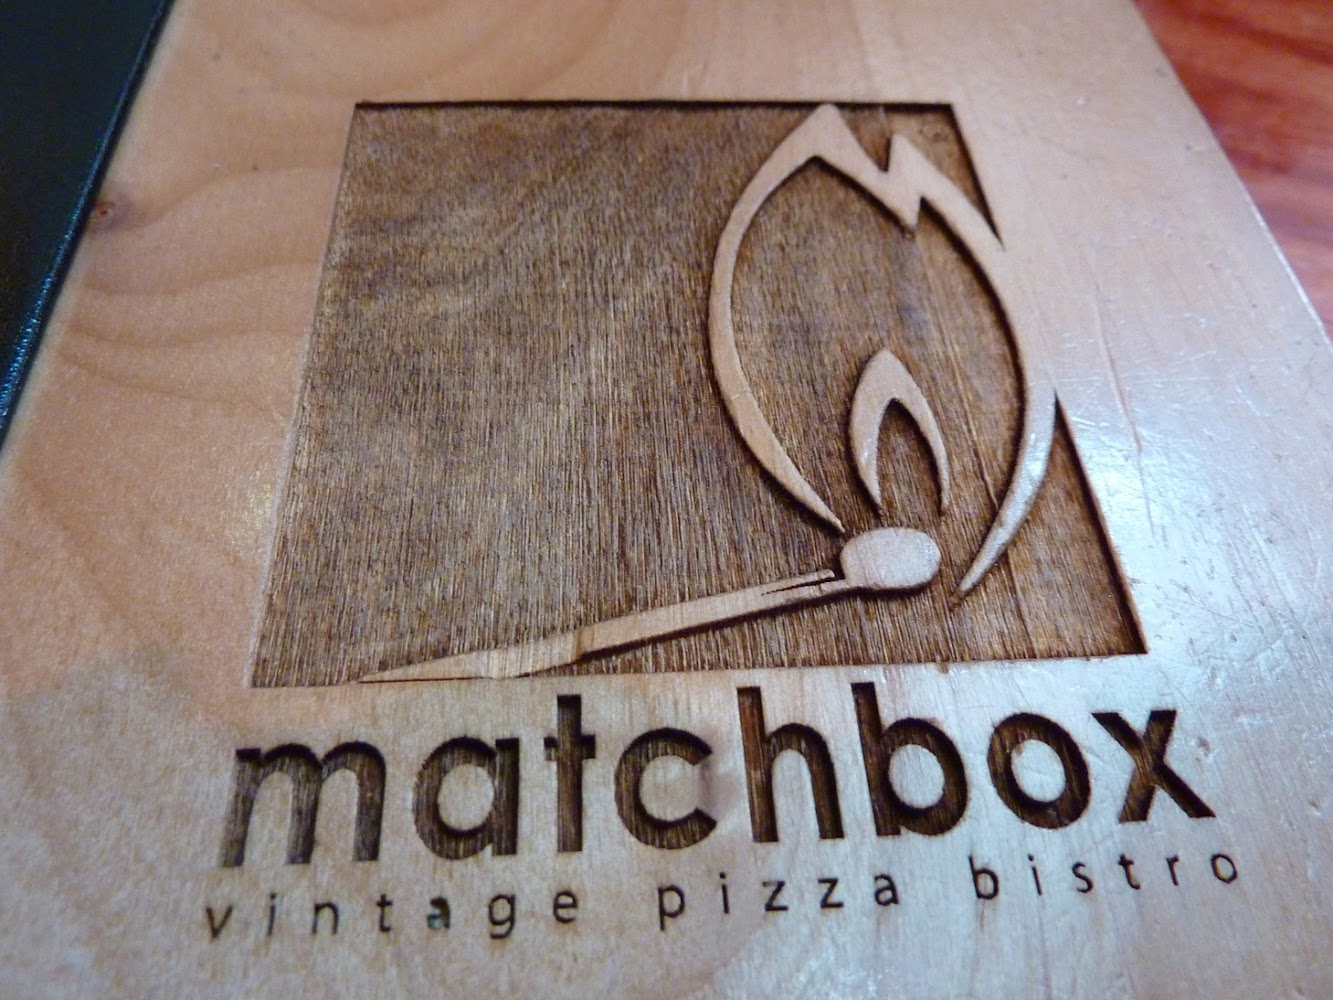 Matchbox Vintage Pizza Bistro